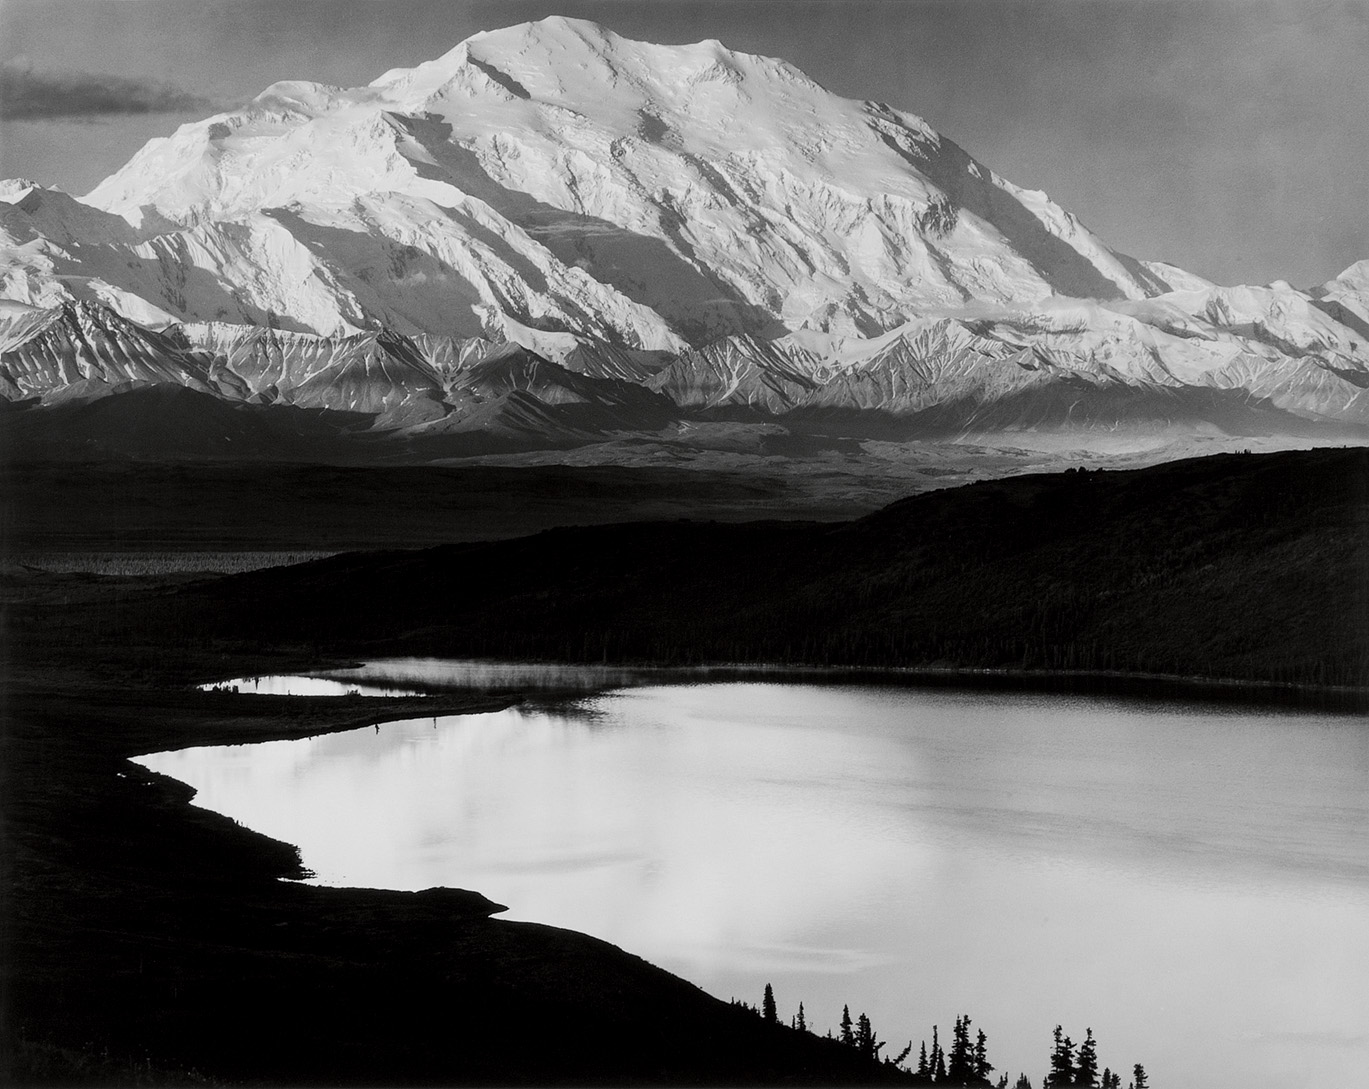 In black and white · national parks conservation association